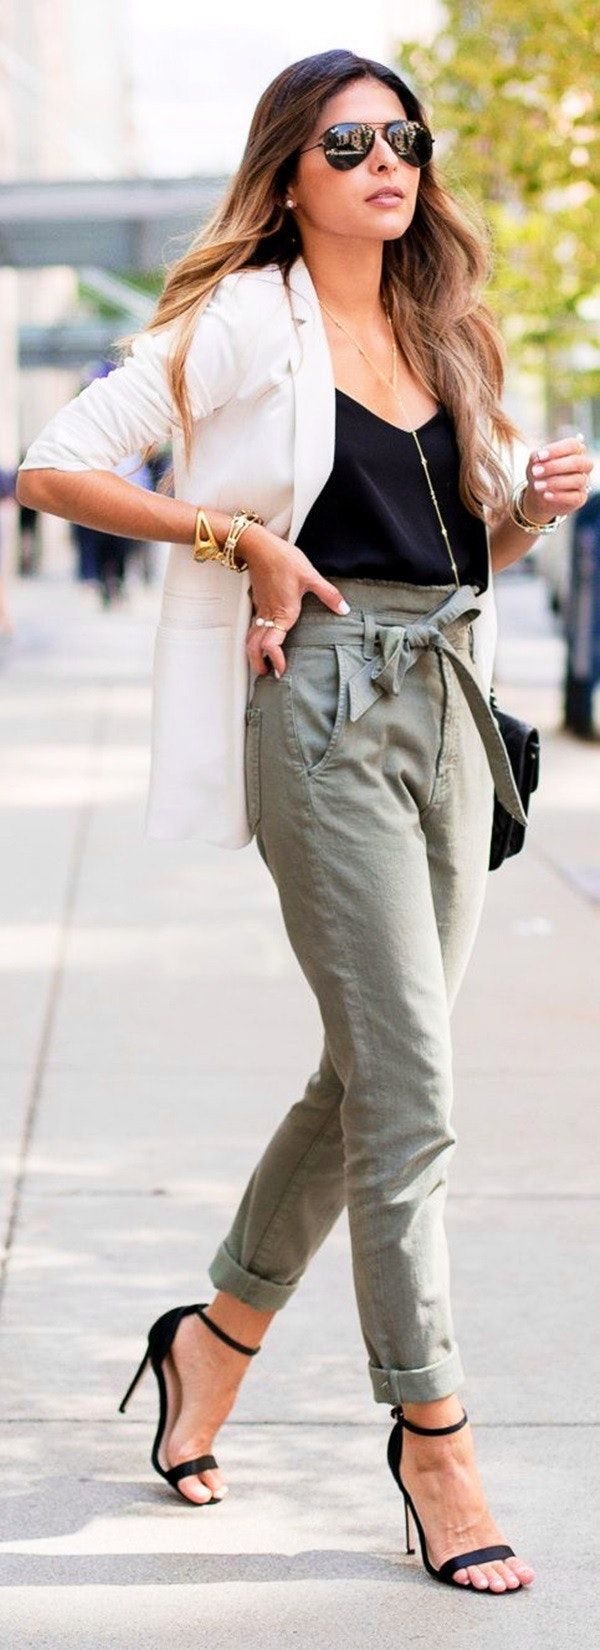 best shoes save up to 60% hot-selling genuine summer #outfits White Blazer + Black Top + Khaki Pants + ...